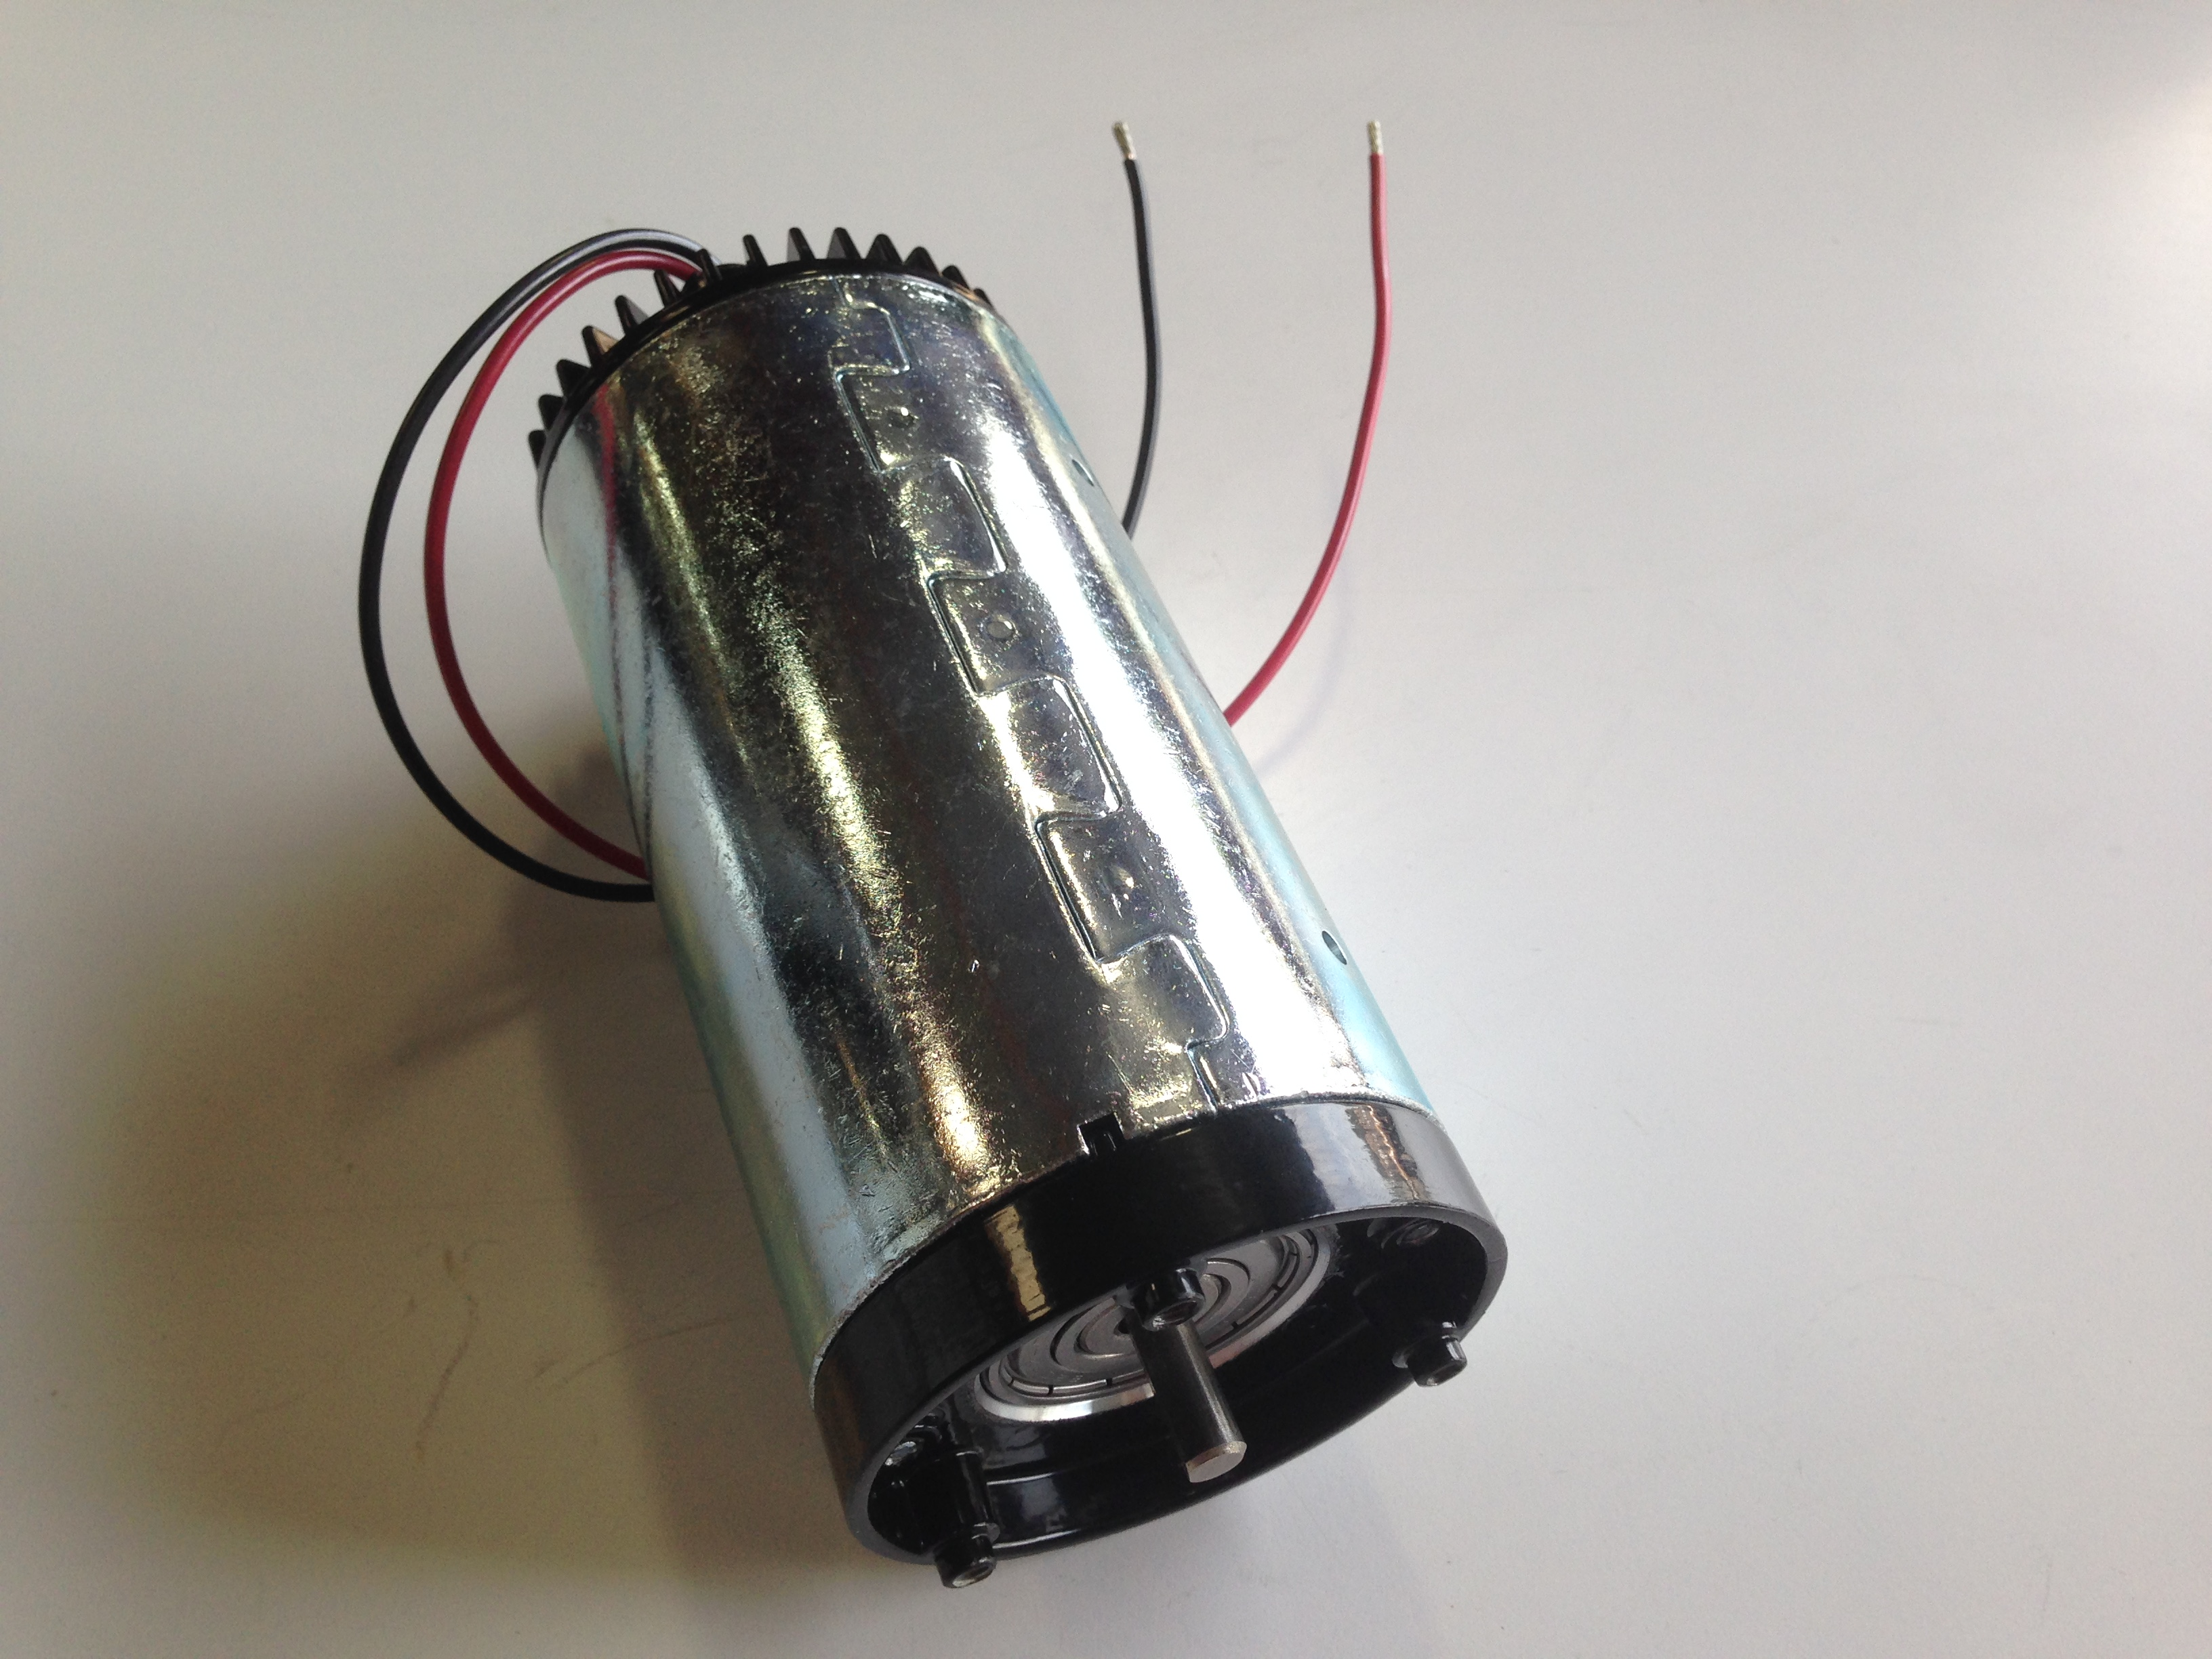 AQUATEC, SWP4000MTR, REPLACEMENT MOTOR FOR SWP-4000, SUBMERSIBLE PUMP